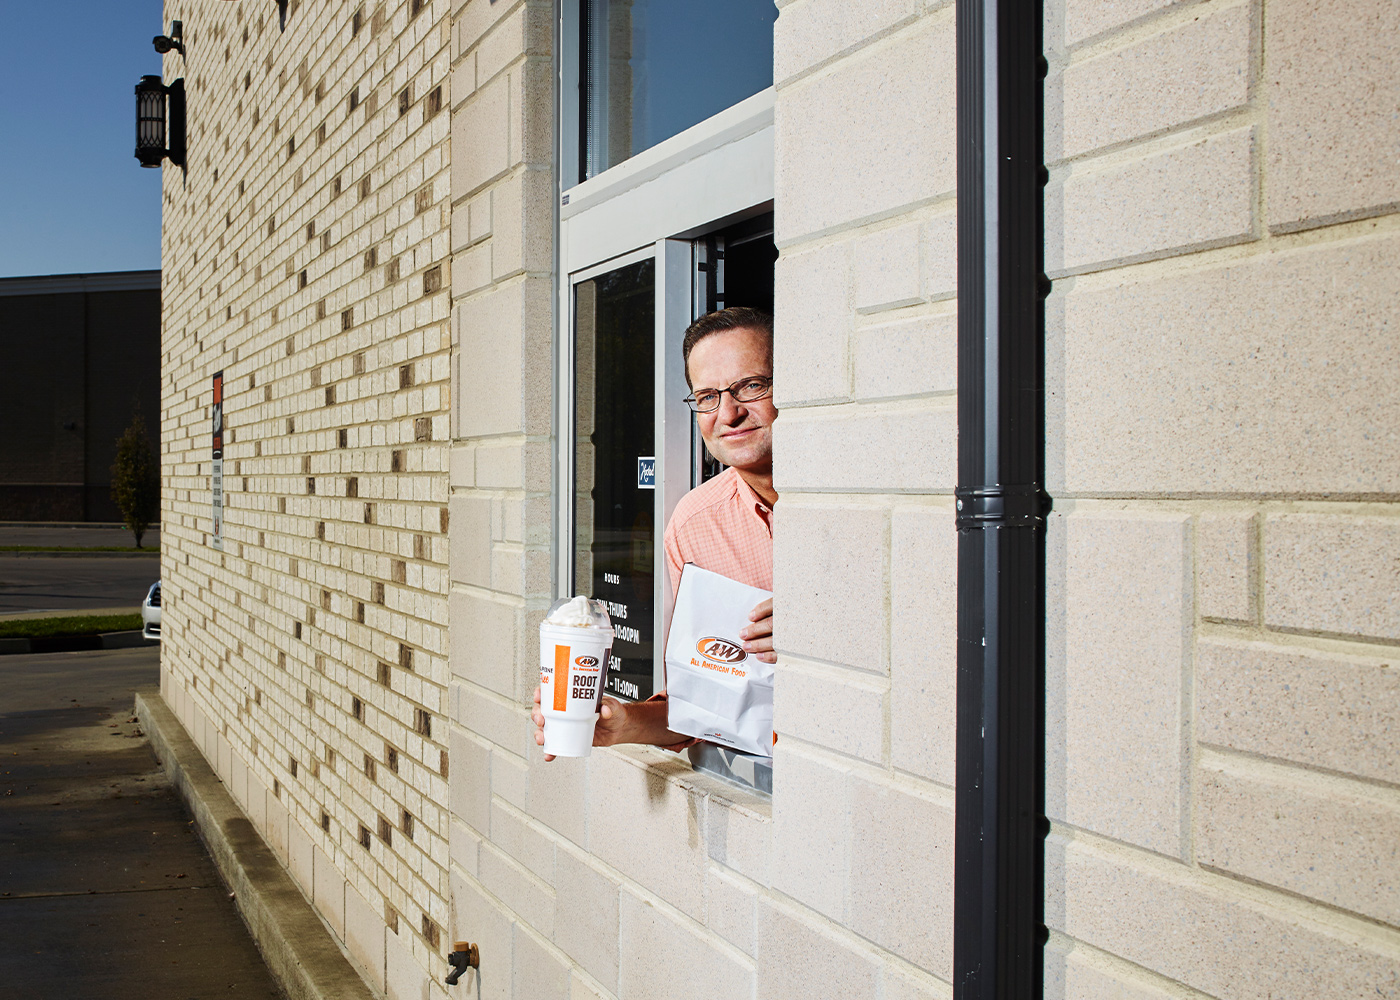 Photo of Kevin Bazner holding an A&W bag and to-go cup in an A&W drive-thru window.